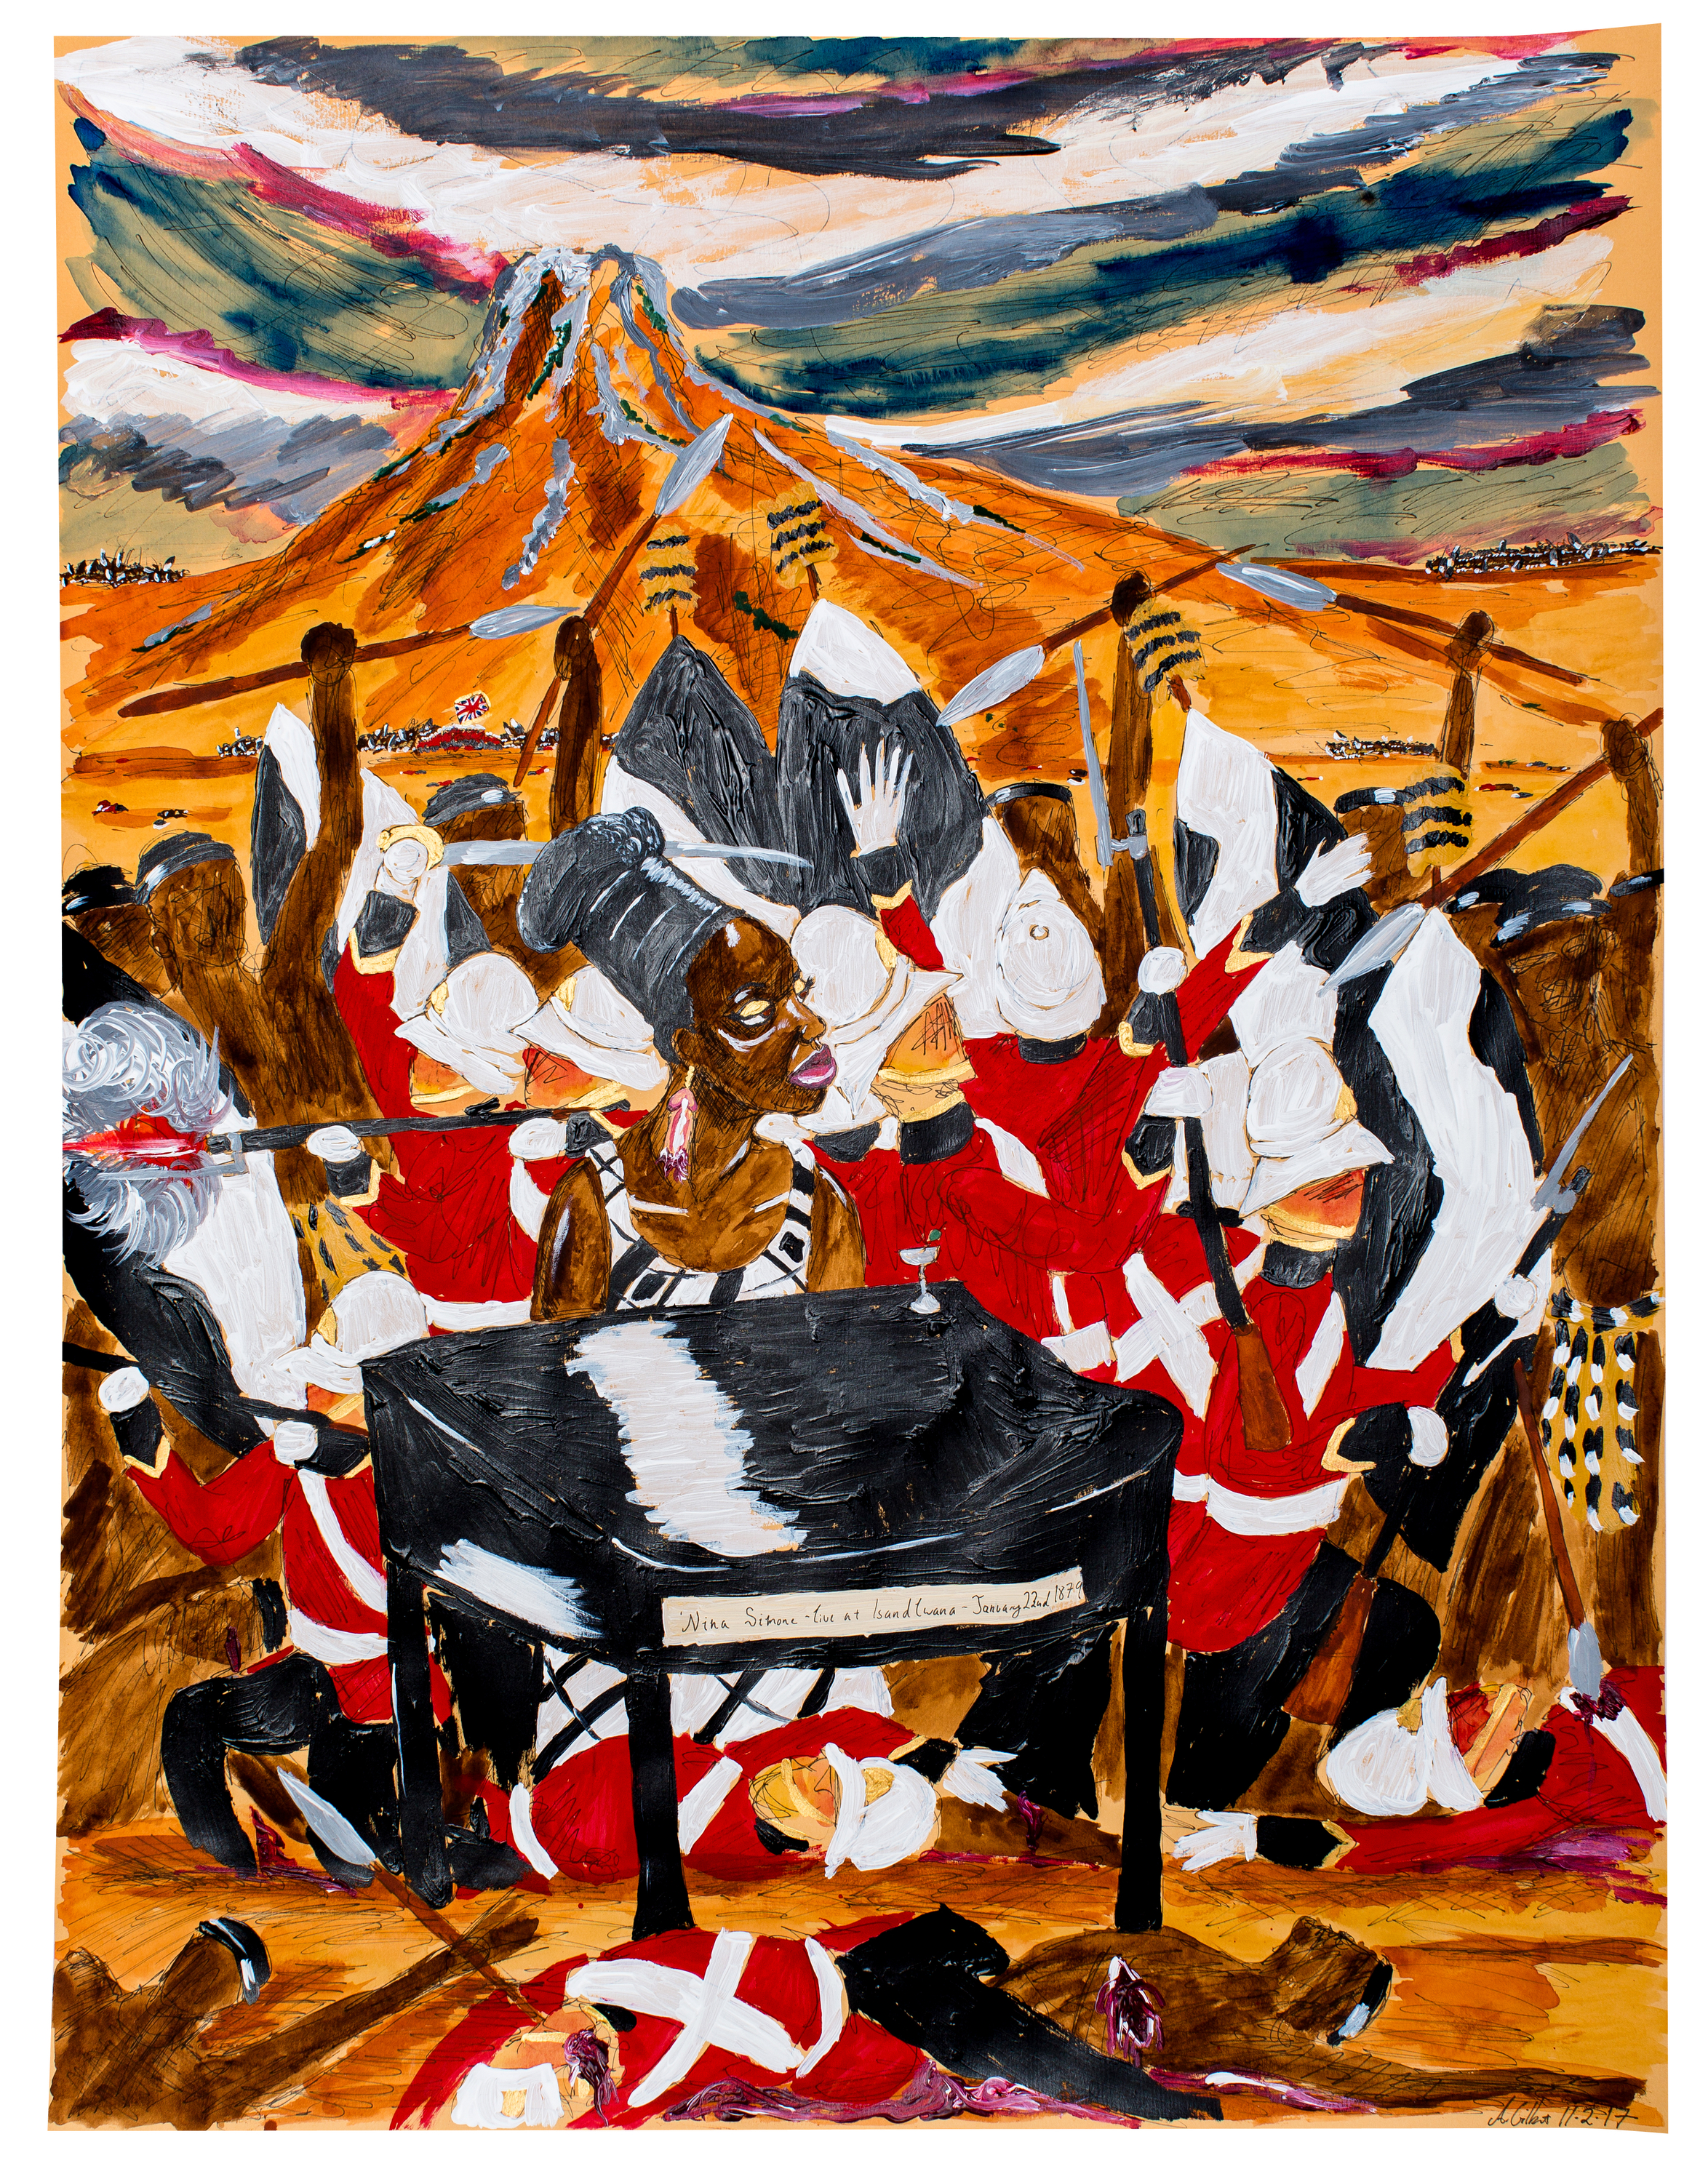 Andrew Gilbert, Nina Simone - live at Isandlwana, January, 22 1879, 2017, fineliner, watercolours and acrylic on paper, 64 x 50 cm